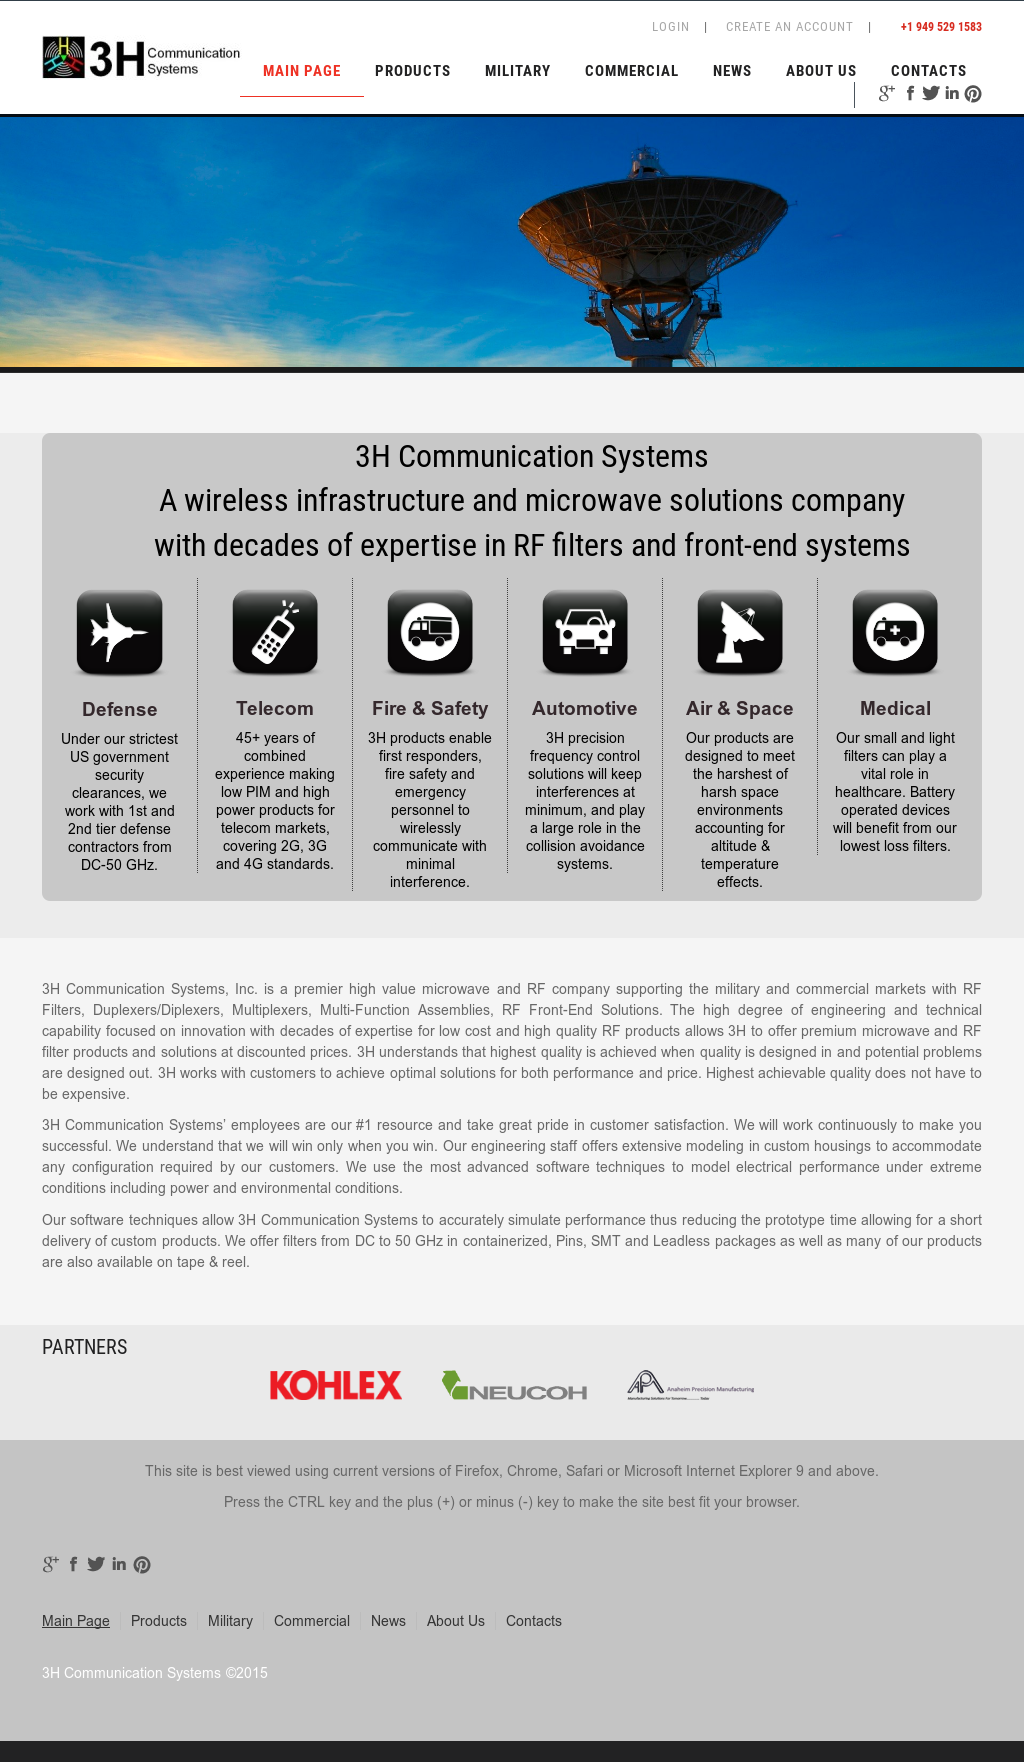 3h Communication Systems Competitors, Revenue and Employees